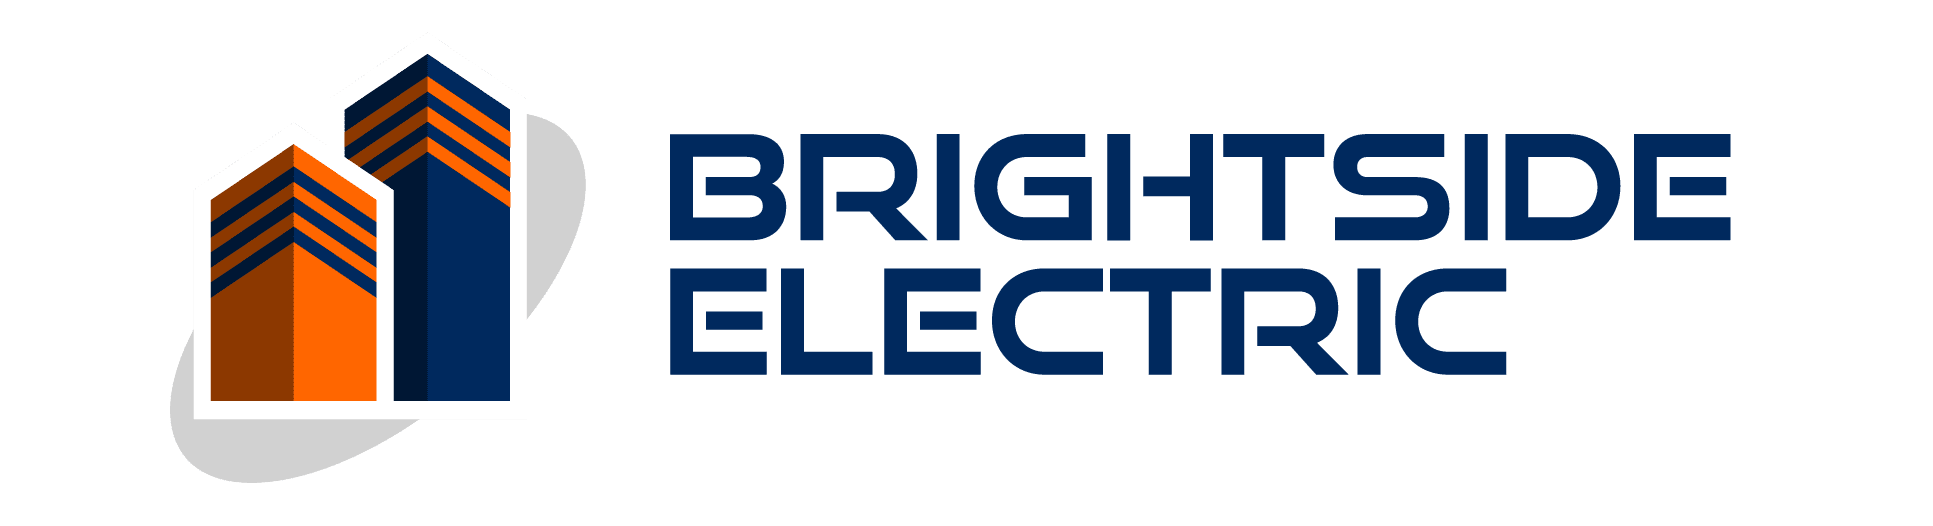 Brightside Electric